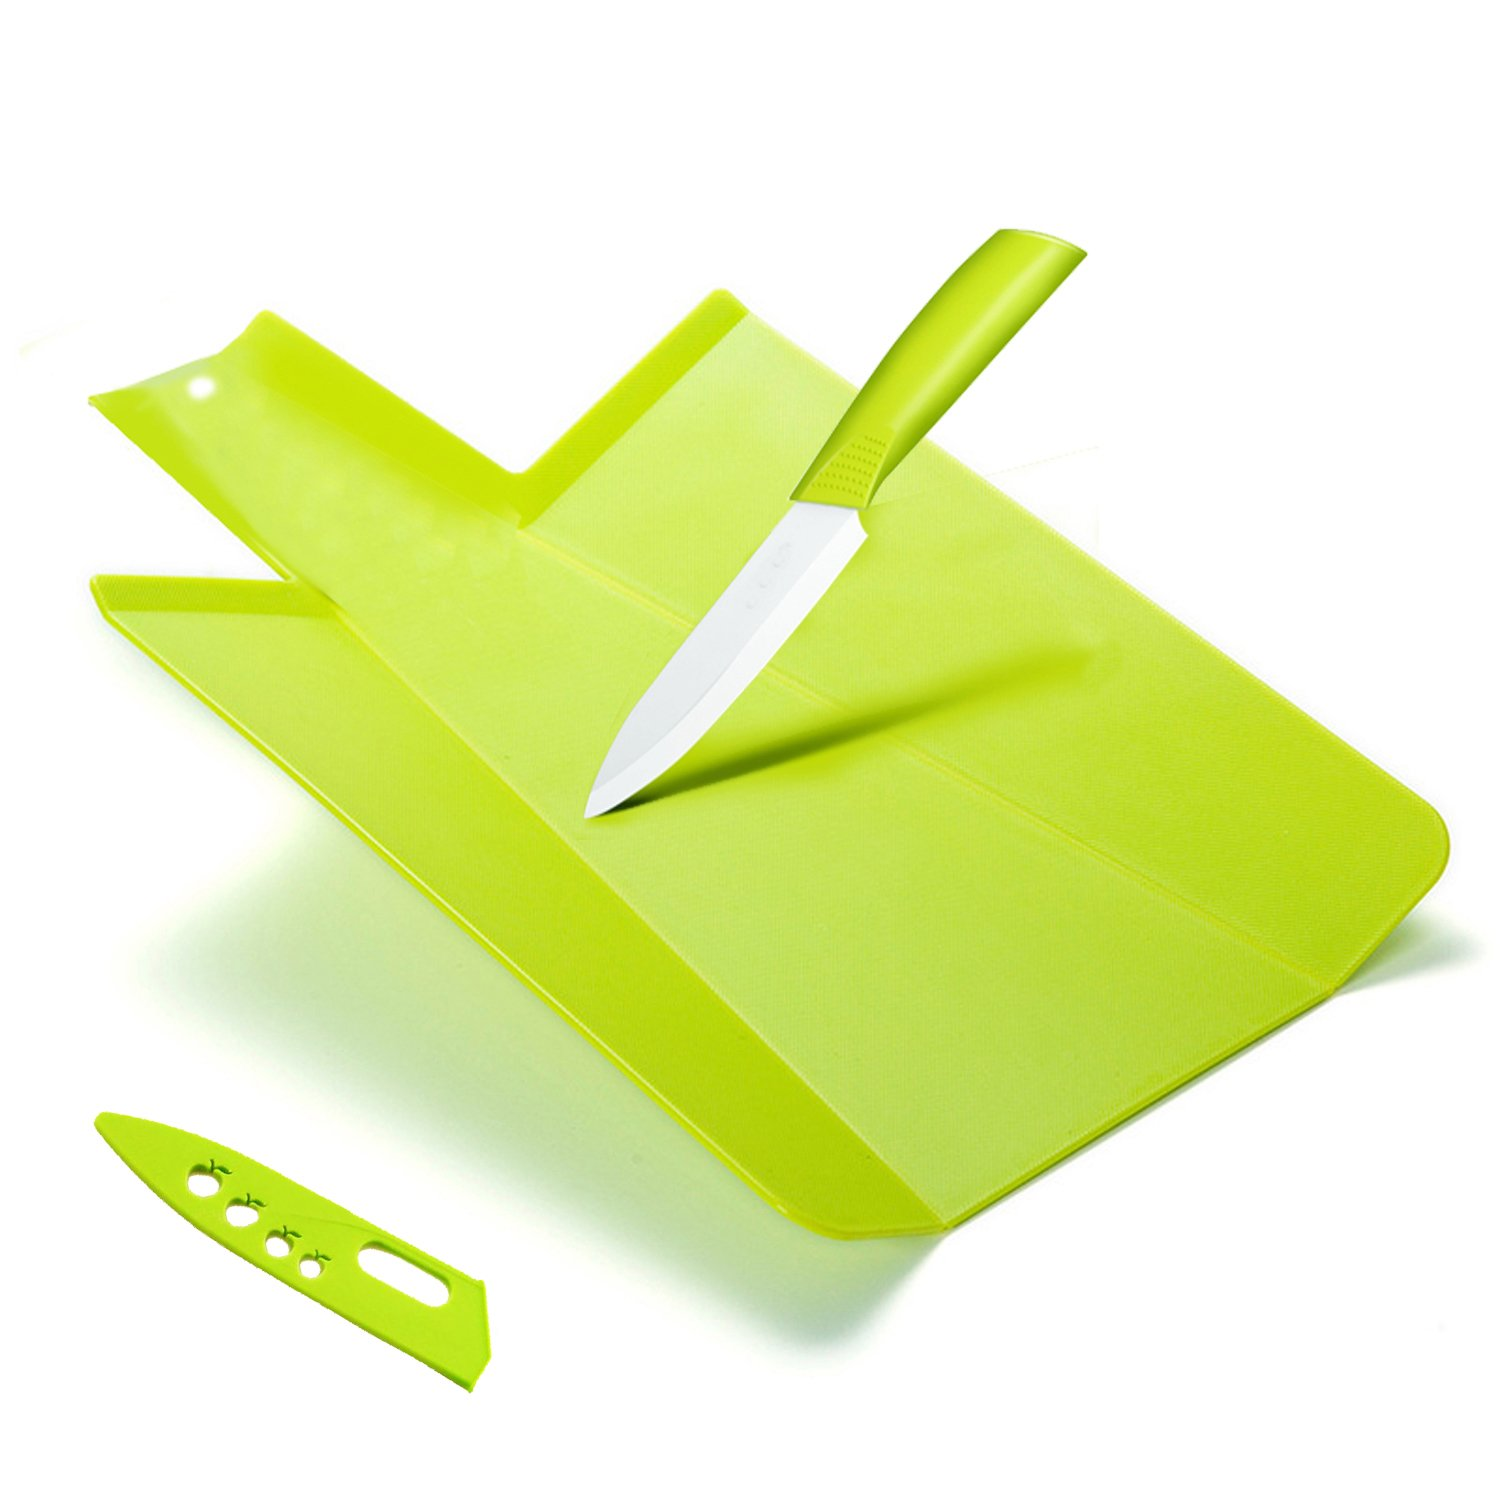 Kioos Foldable Cutting Board And 5 Inch Ceramic Knife Set Multifunctional Chopping Block and Chute with Portable Camping Outdoor Cutlery Green